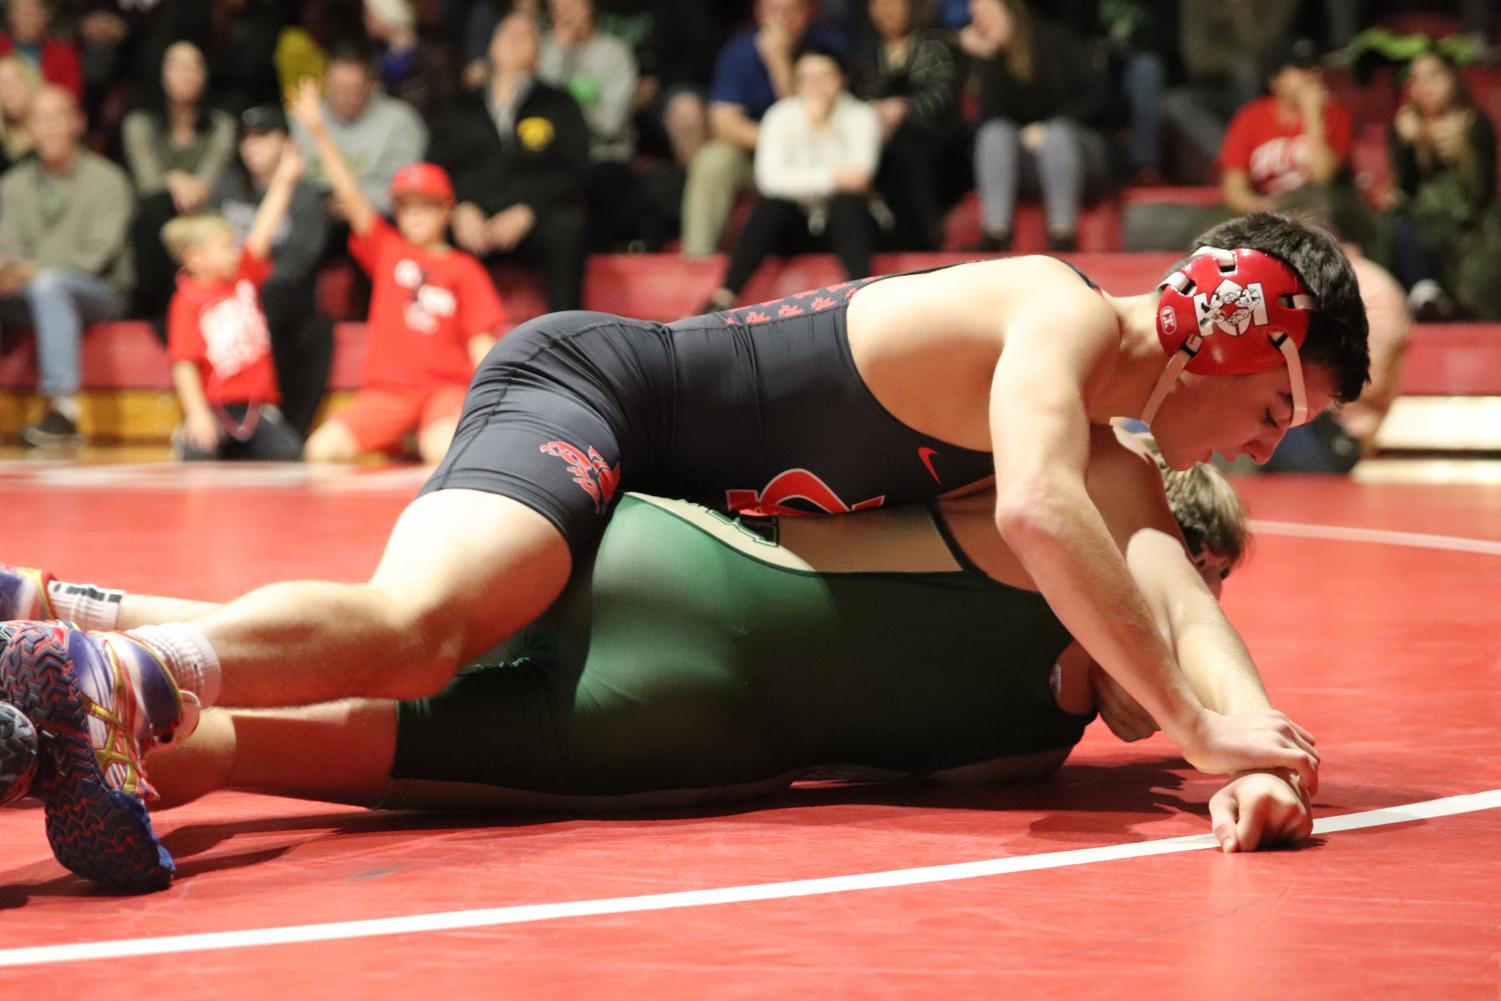 Matt Rew '20 pins his opponent in one minute during the Little Hawks' meet against West High on December 14th.